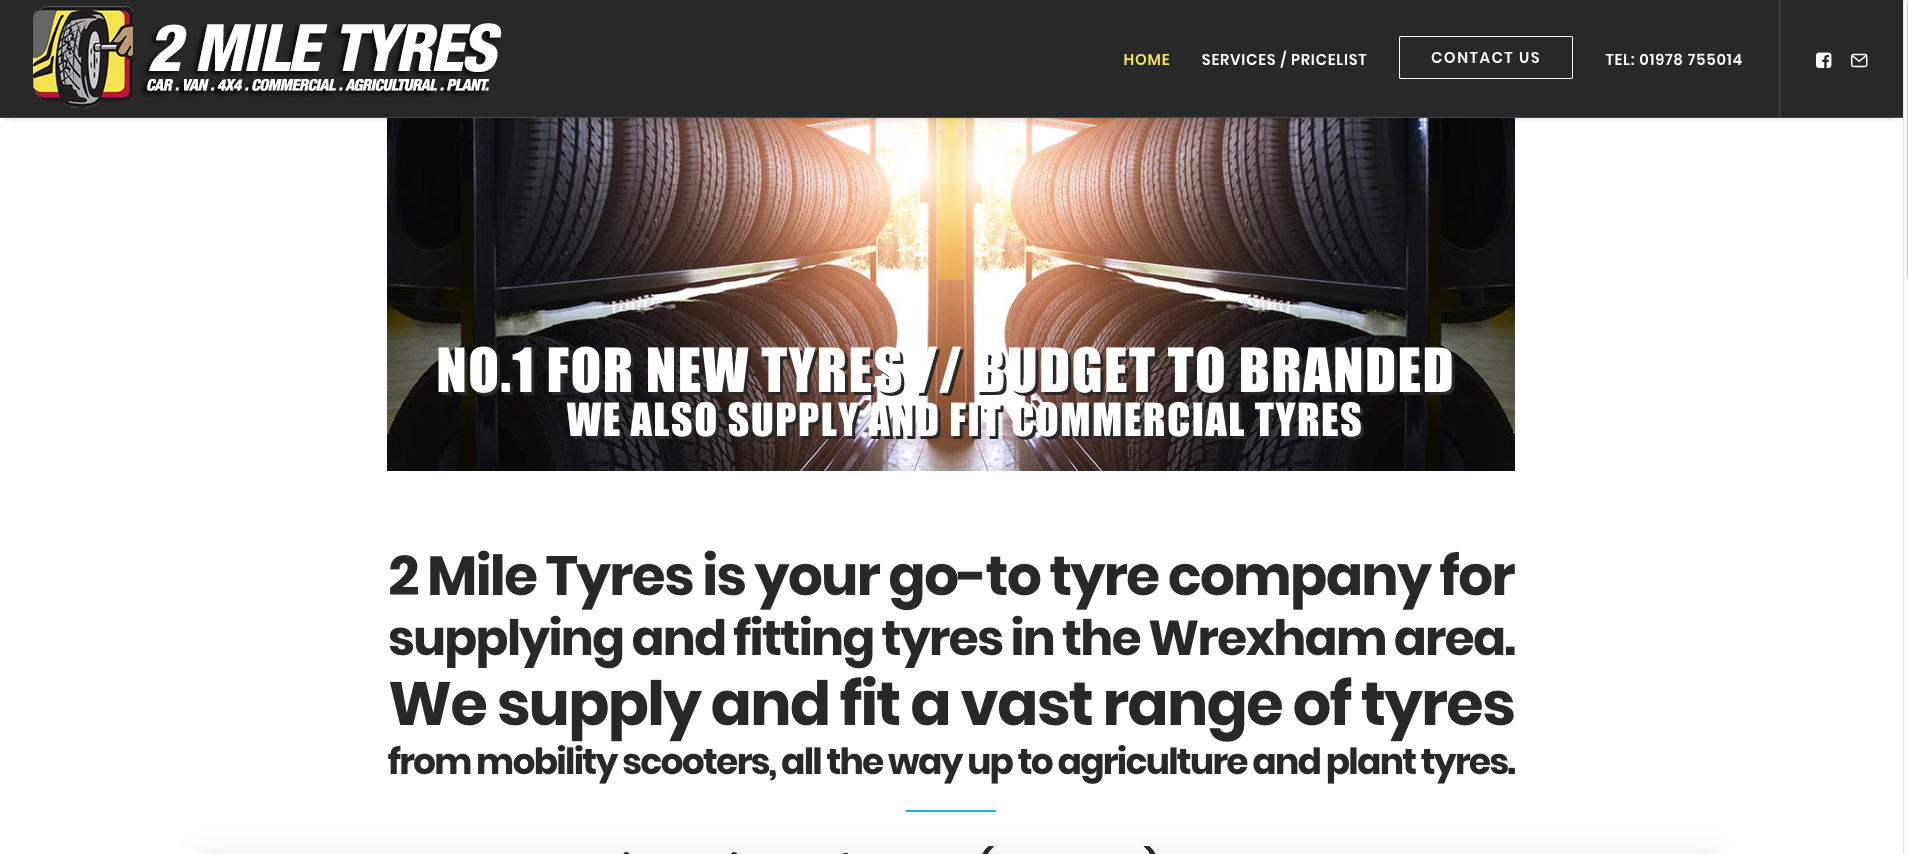 2 mile tyres